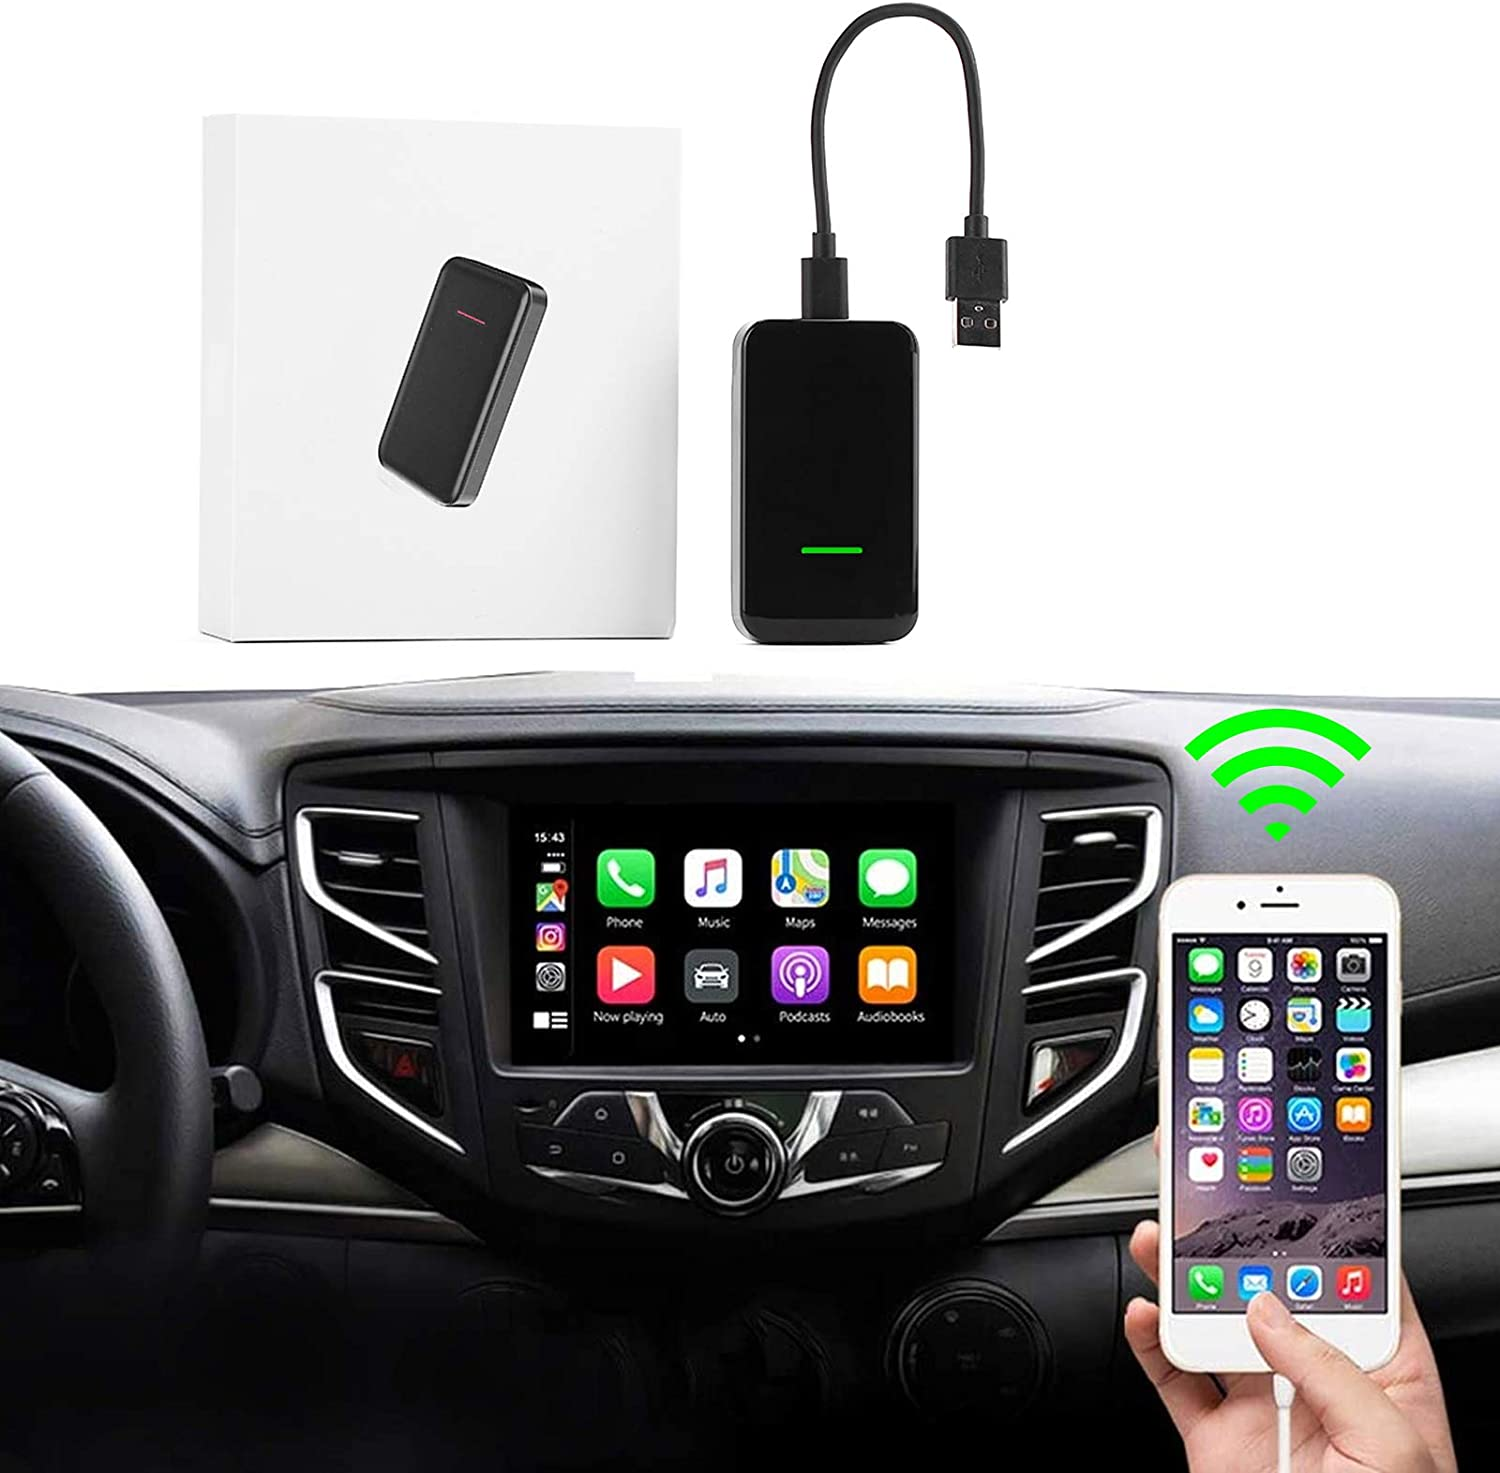 Wireless CarPlay Adapter Factory Wired CarPlay Cars Smartphone Link Receiver for iPhone, Wireless CarPlay Dongle for Audi/Porsche/Volvo/Volkswagen Equip with Wired CarPlay (USB Interface)